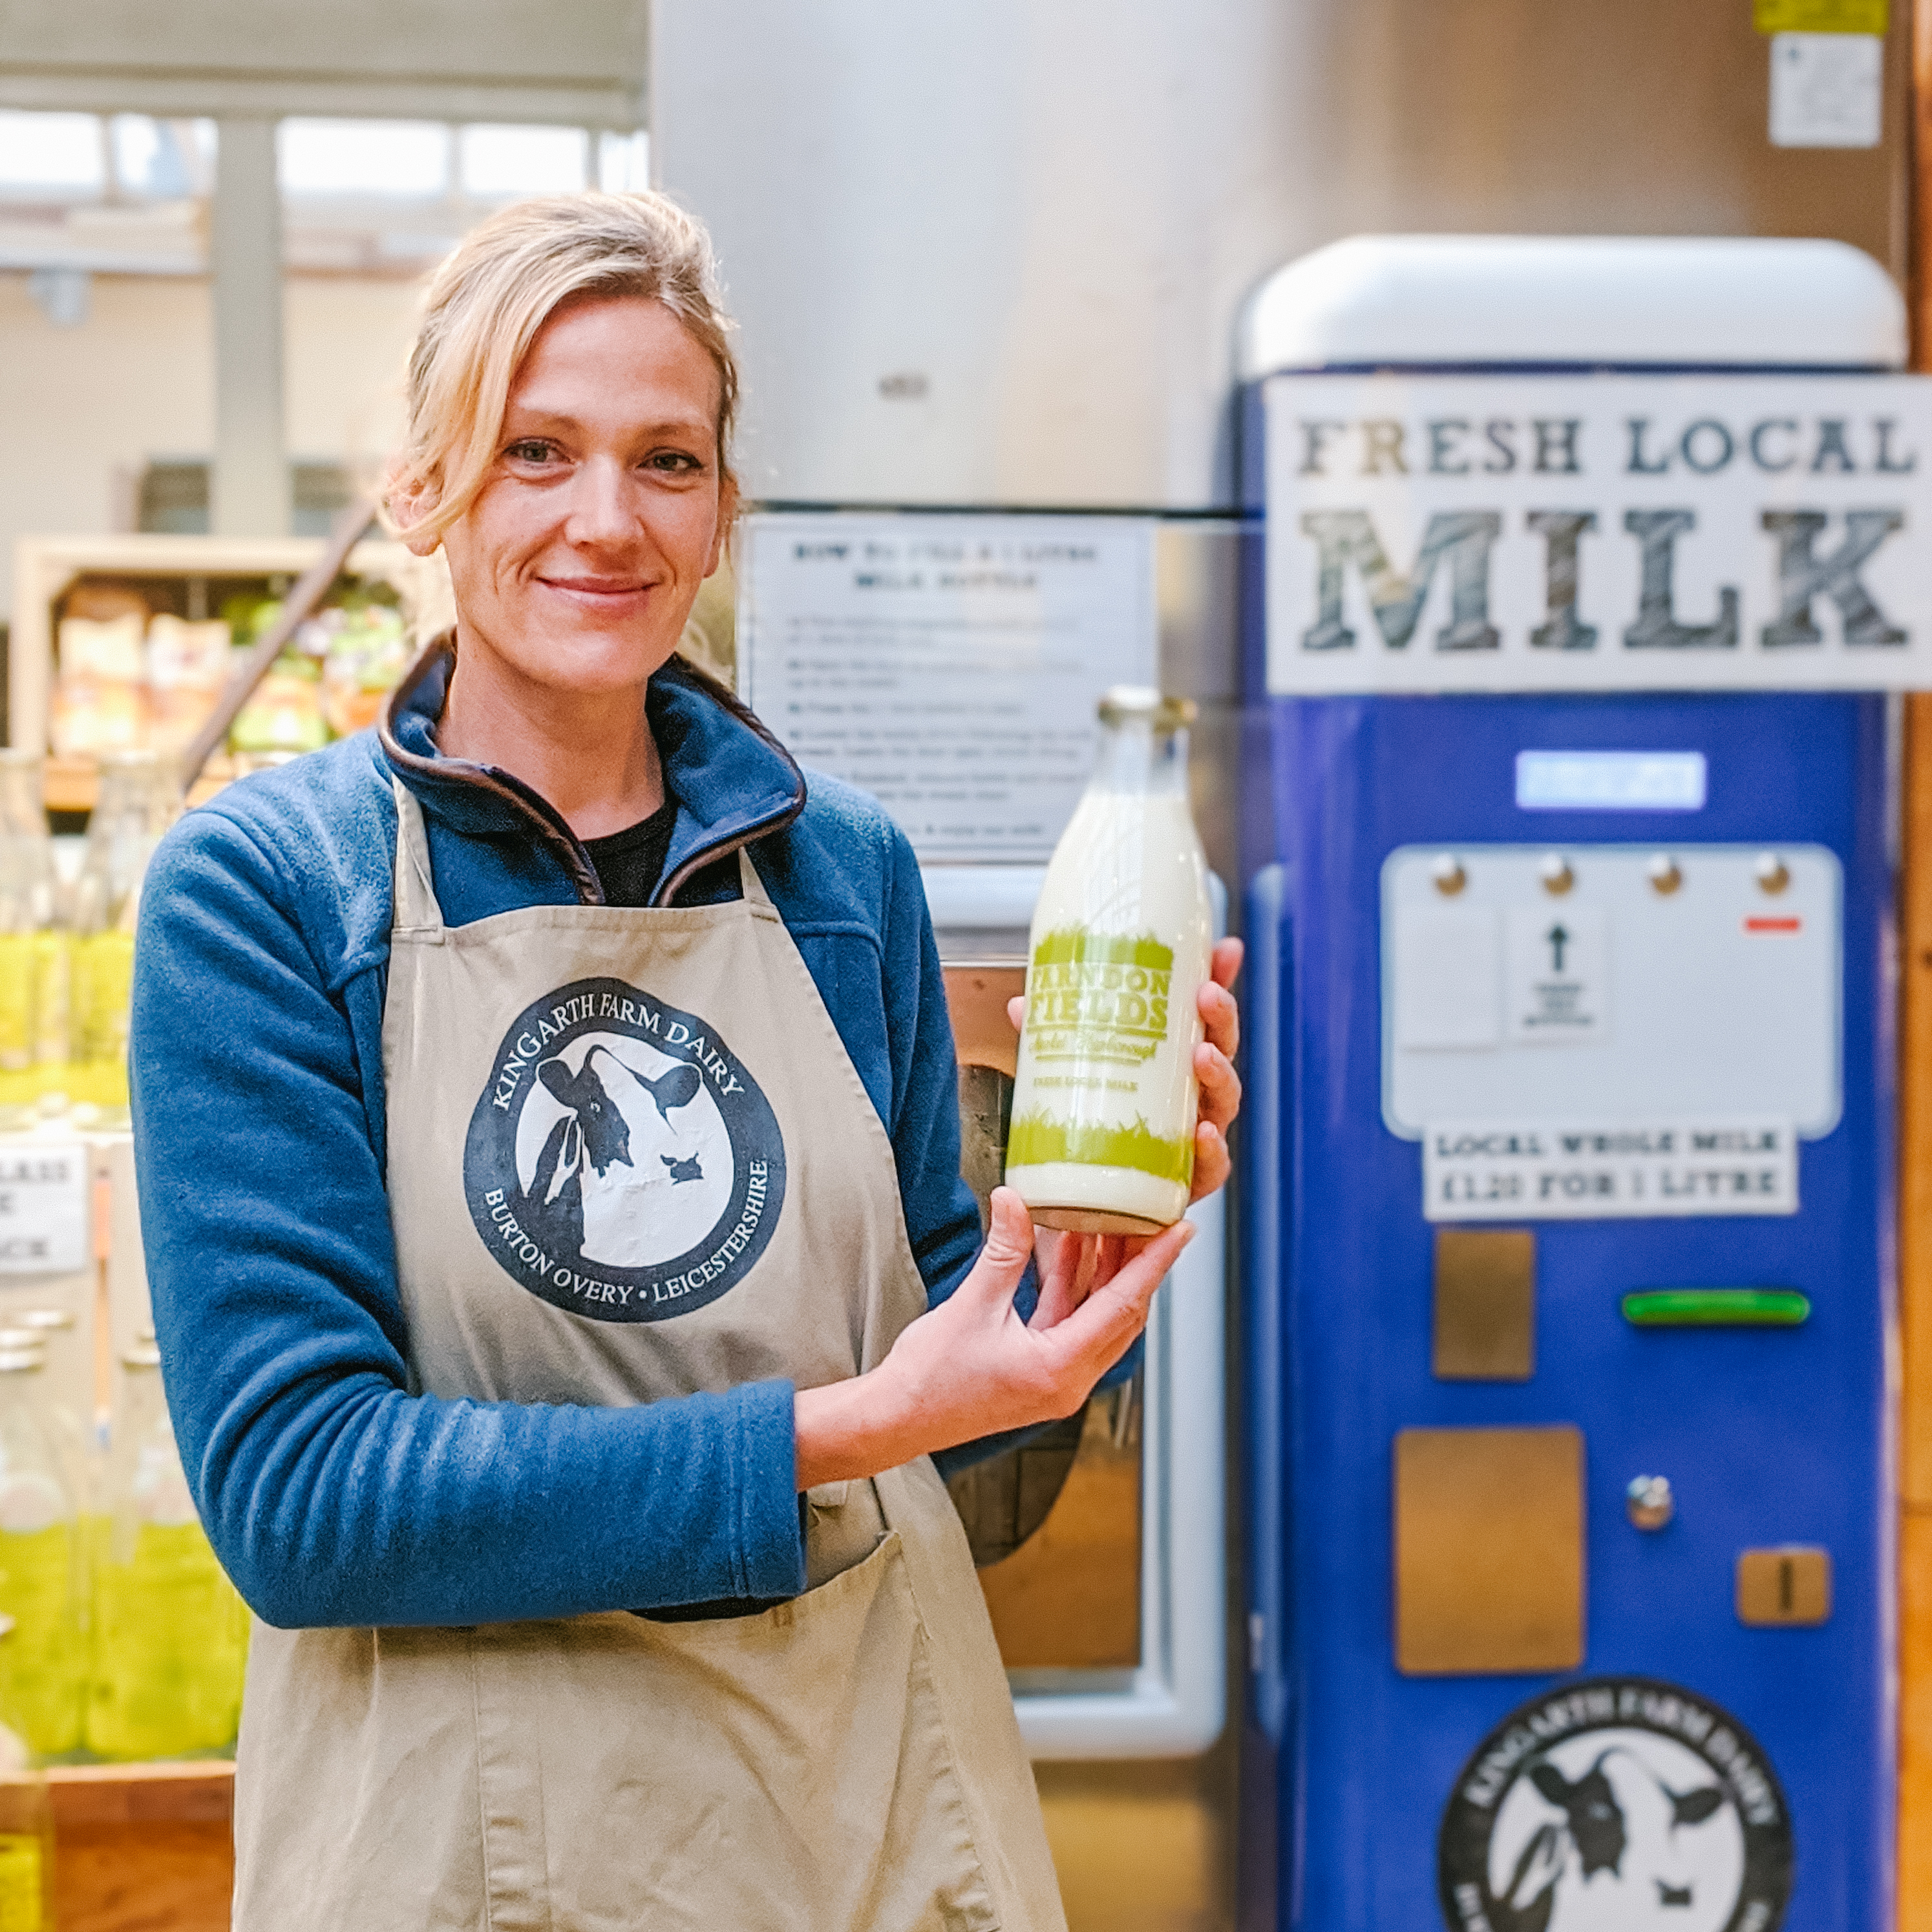 Farndon Fields Milk vending machine, Market Harborough. Award winning farm shop selling local produce, local milk and local meat.